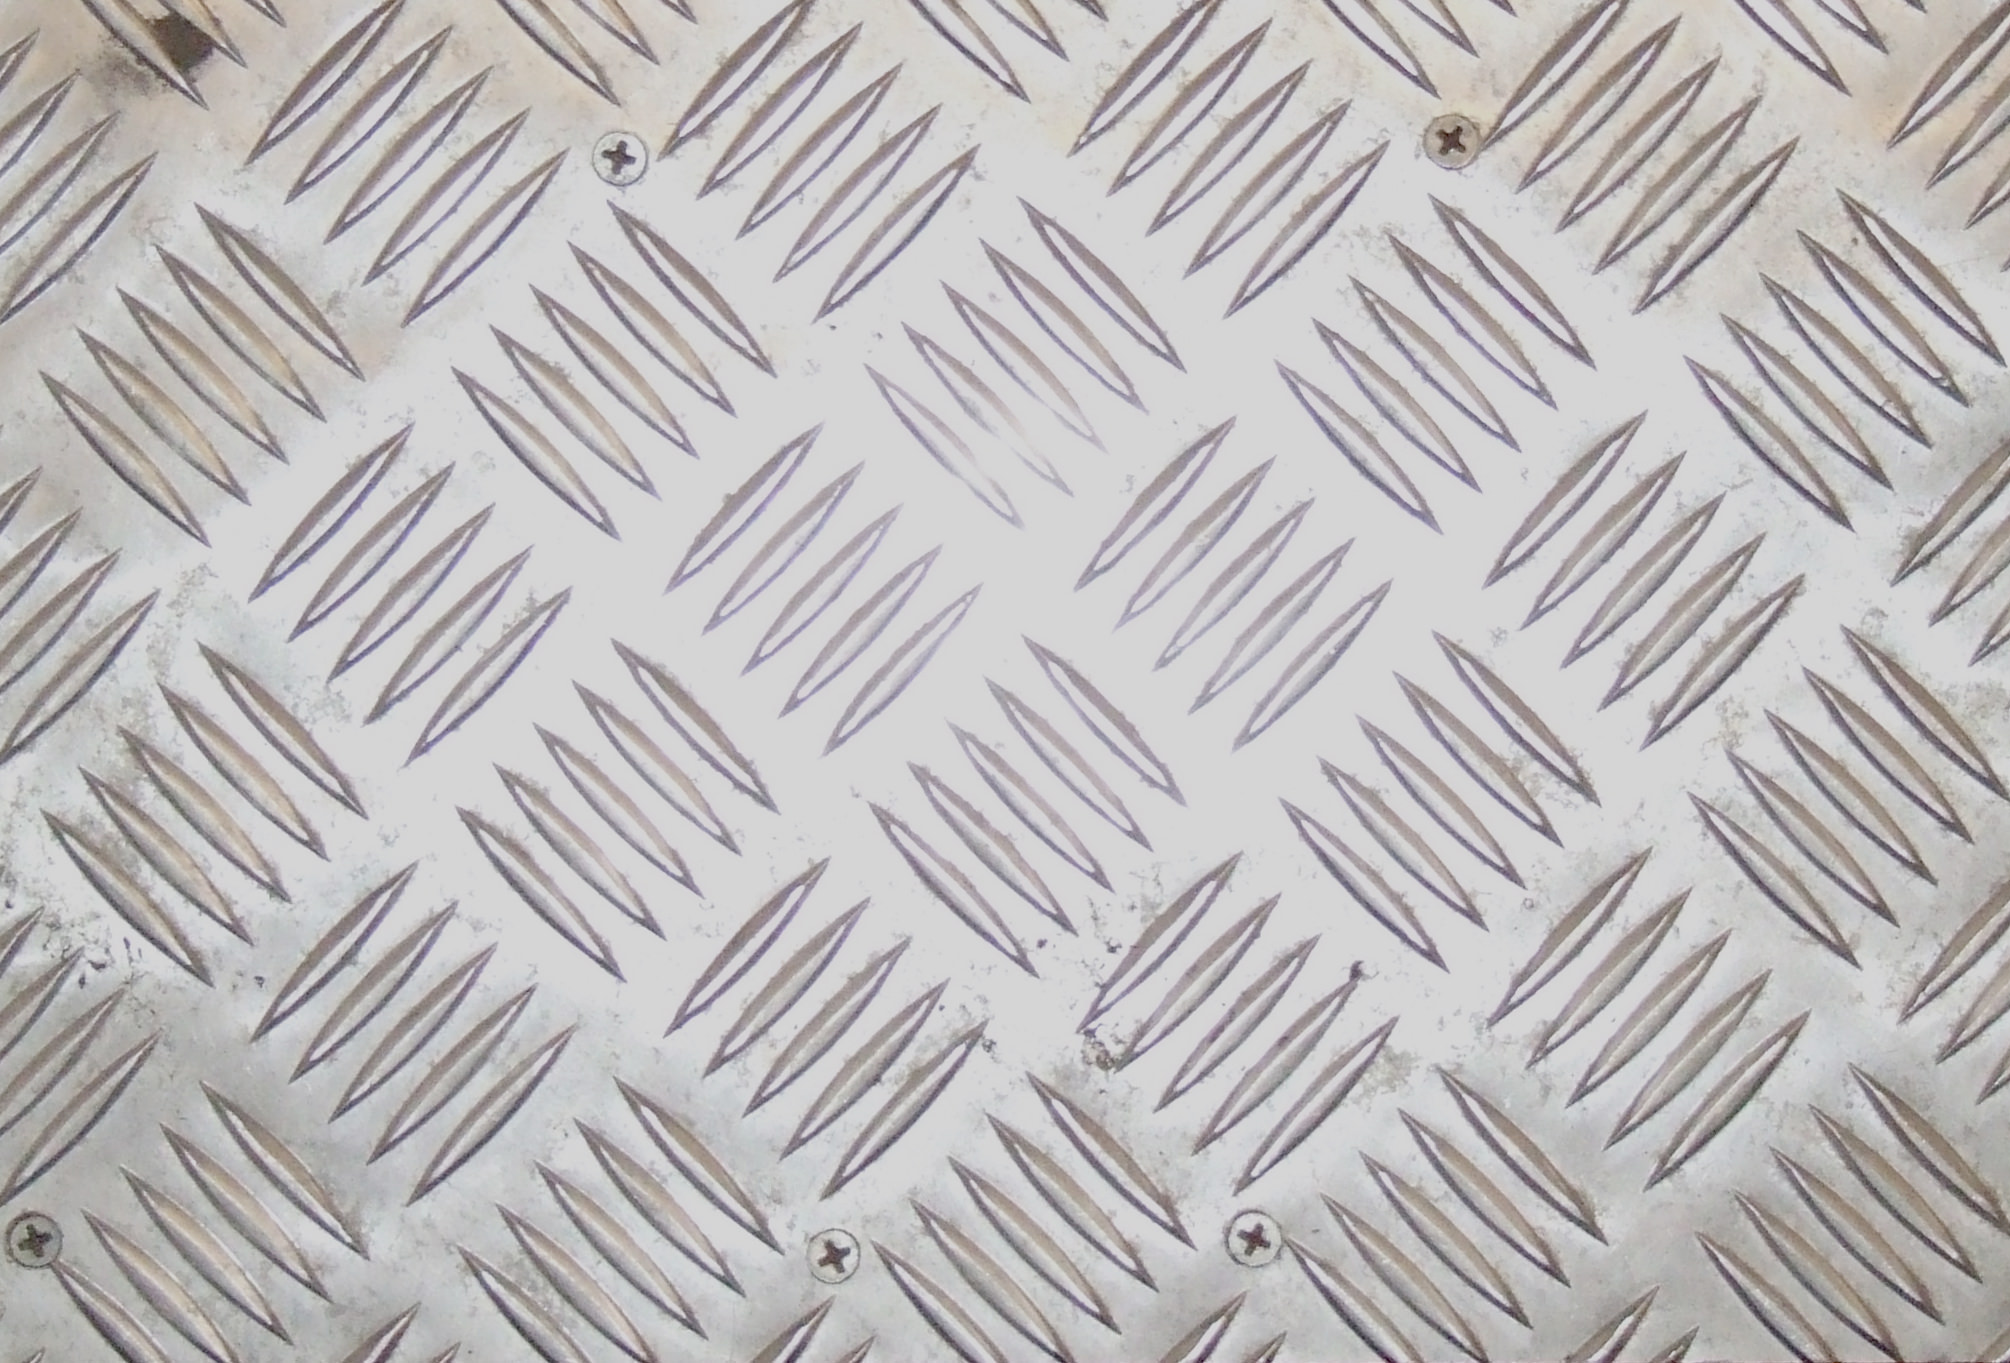 silver grid texture